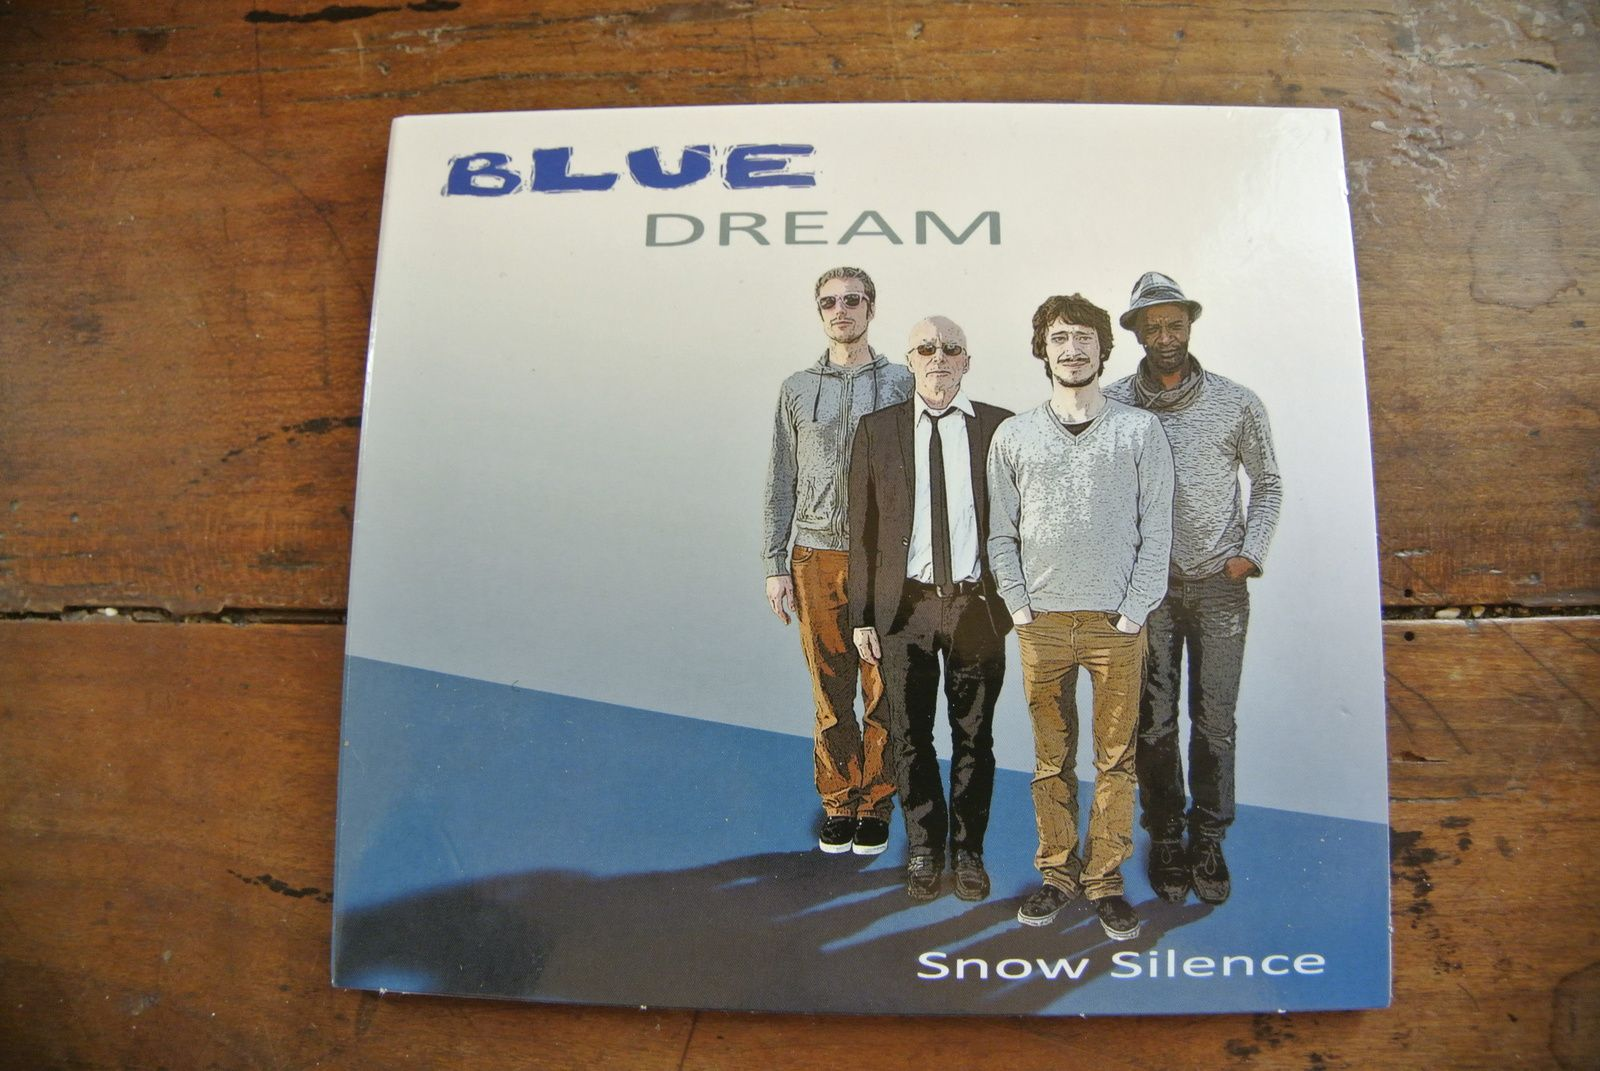 BLUE DREAM: SNOW SILENCE